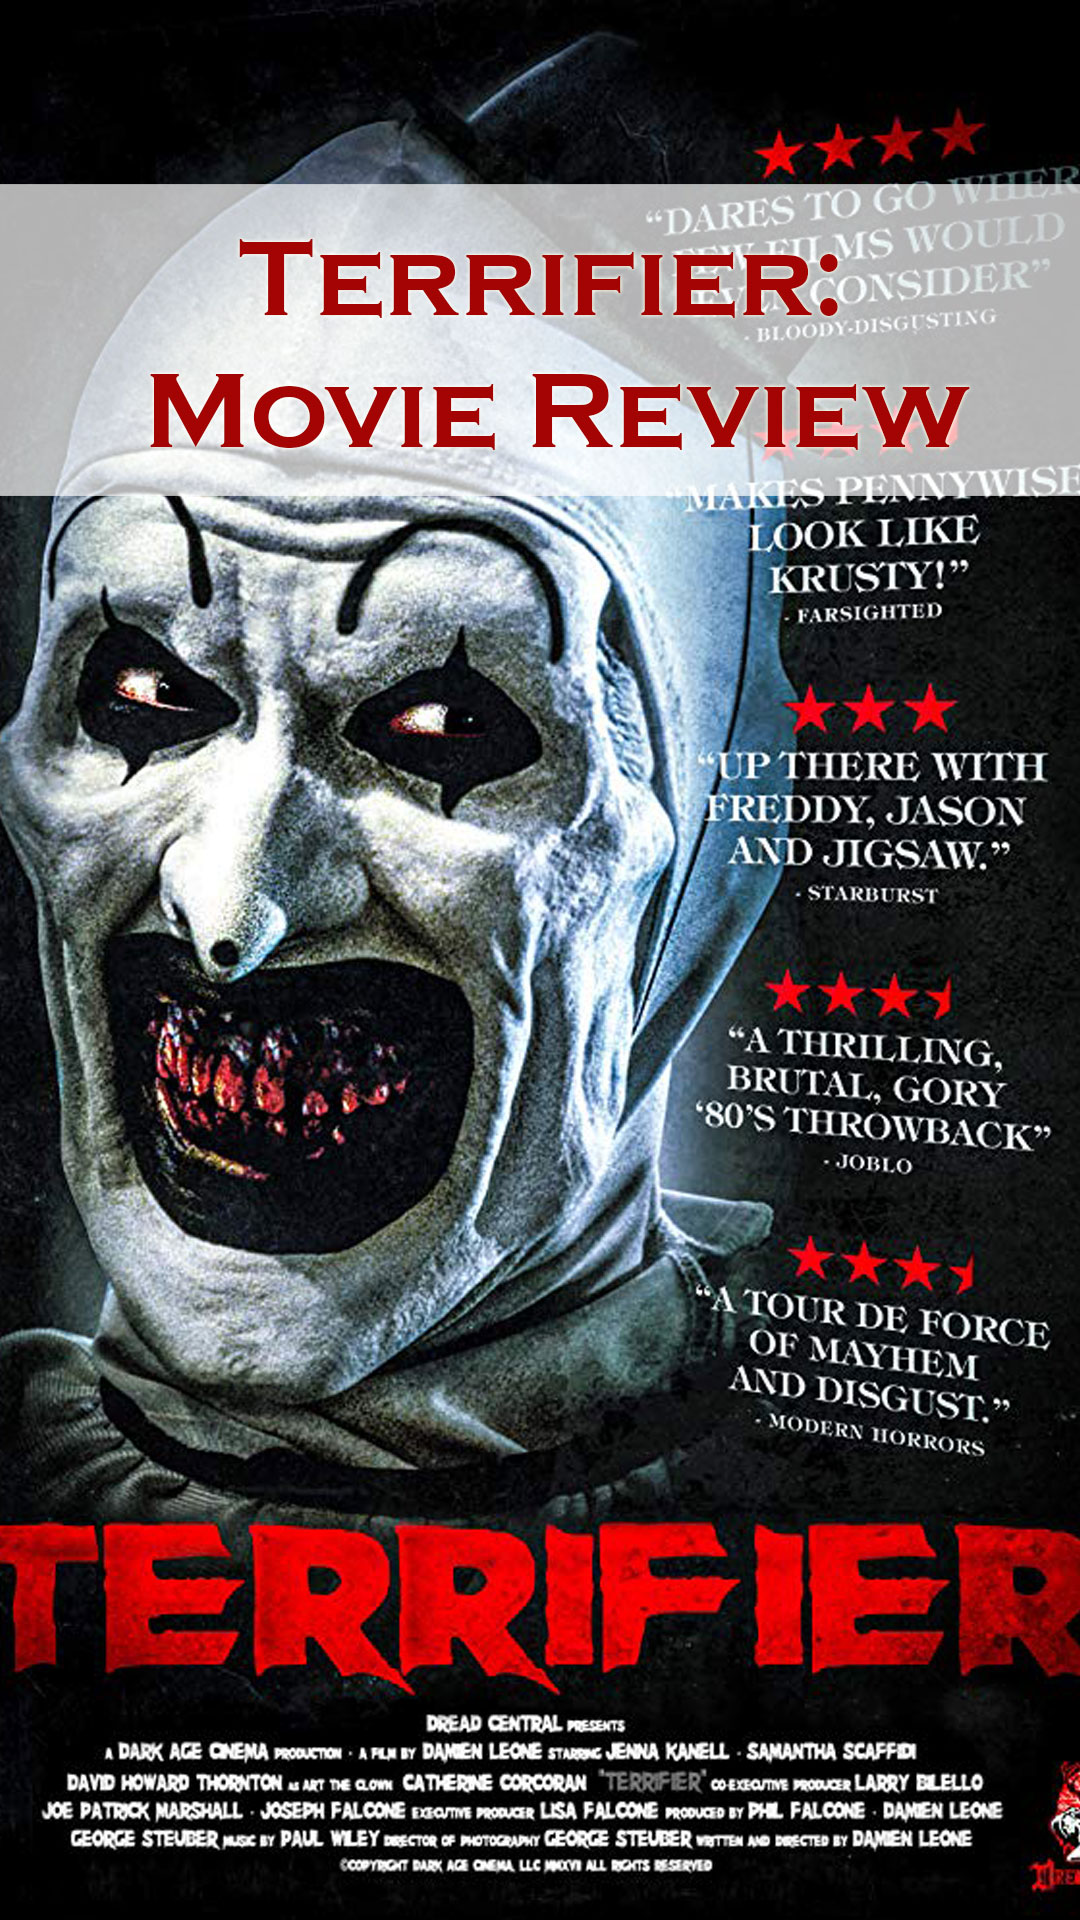 Terrifier Film Review